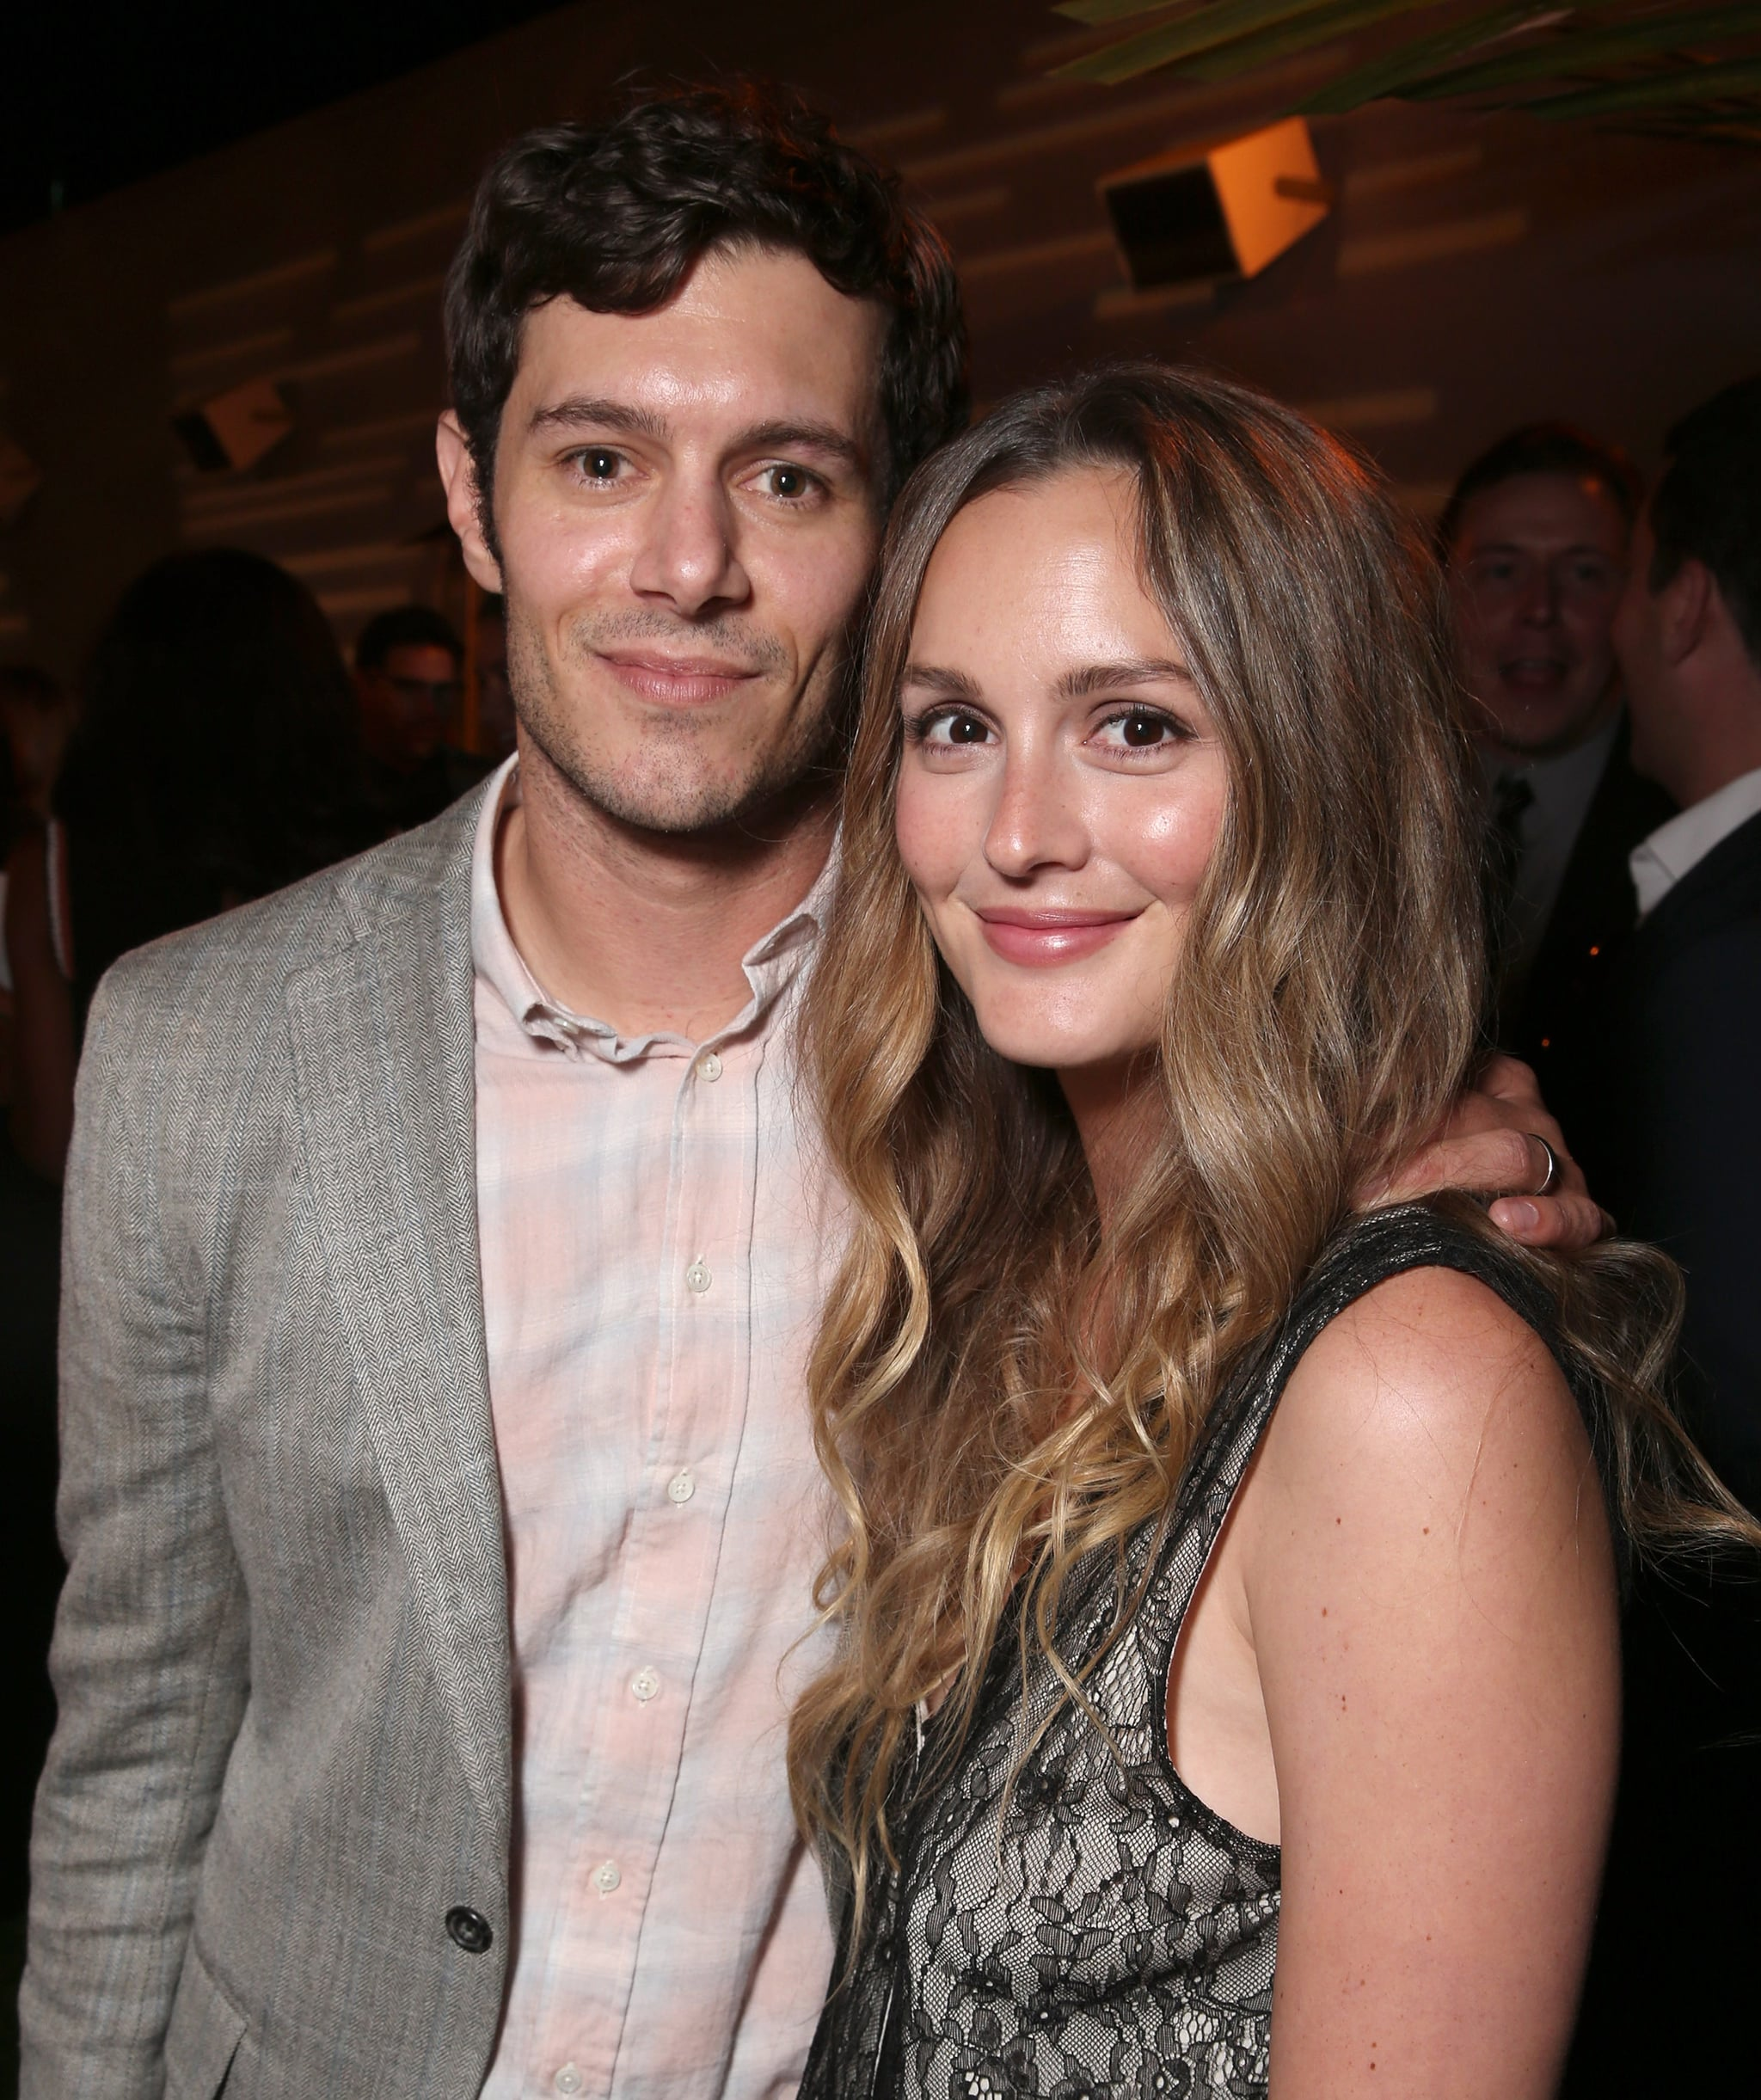 LOS ANGELES, CA - AUGUST 23:  Adam Brody and Leighton Meester attend the after party for the premiere pf Crackle's